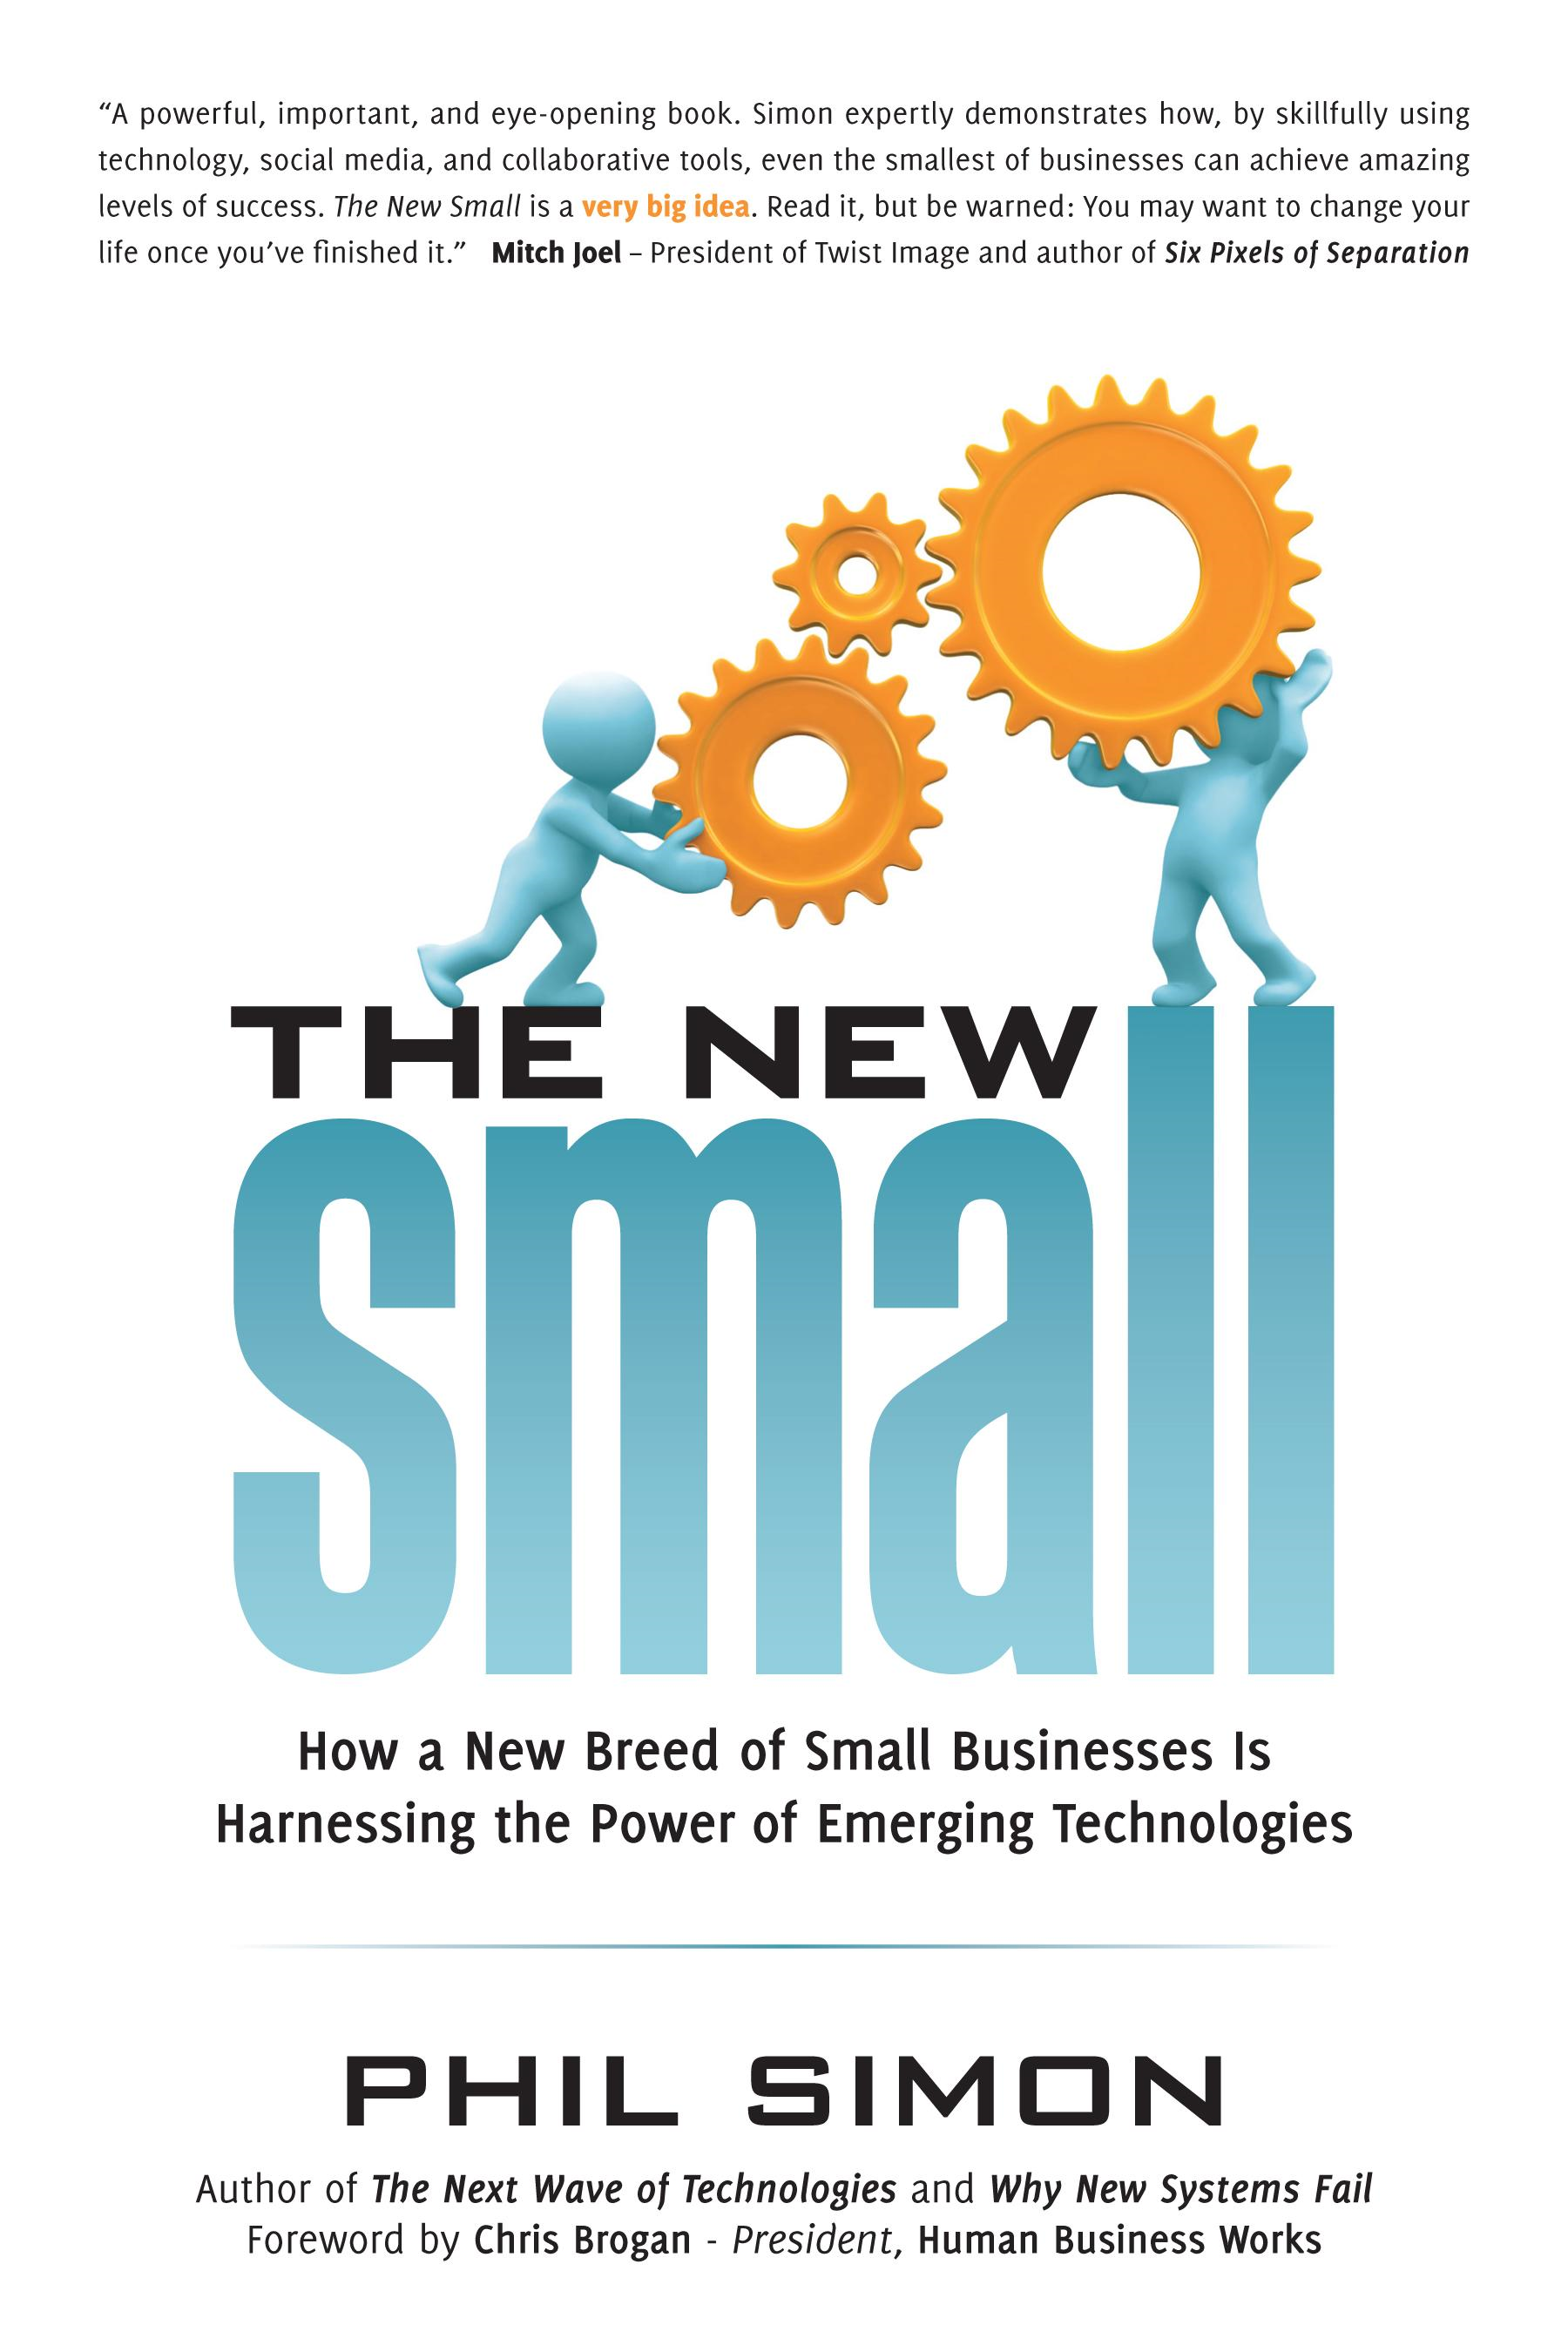 The New Small: How a New Breed of Small Businesses Is Harnessing the Power of Emerging Technologies By: Phil Simon